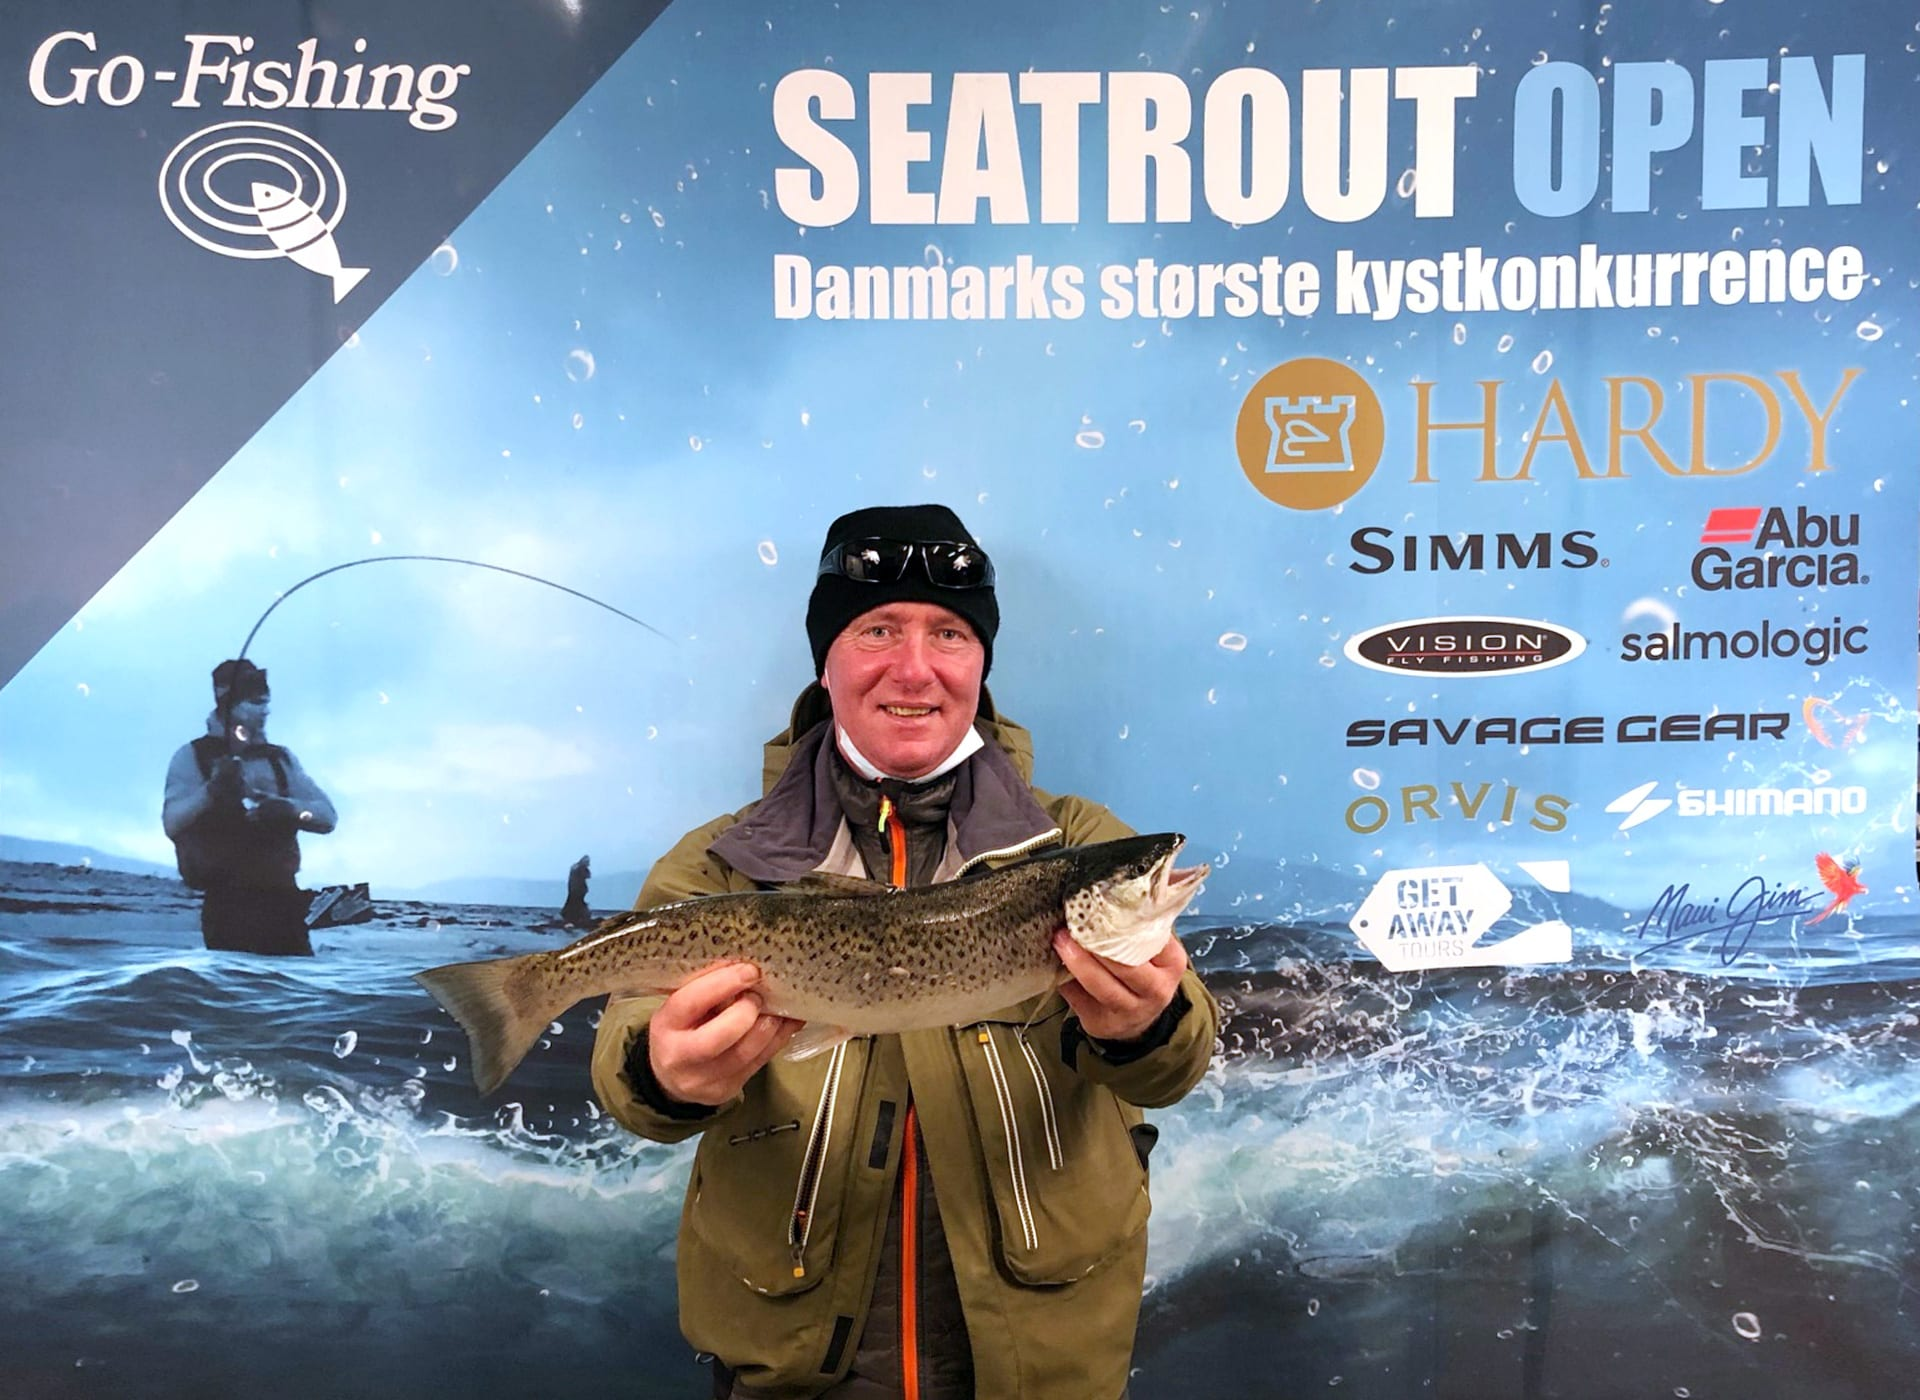 Seatrout Open deltager Peter Daly